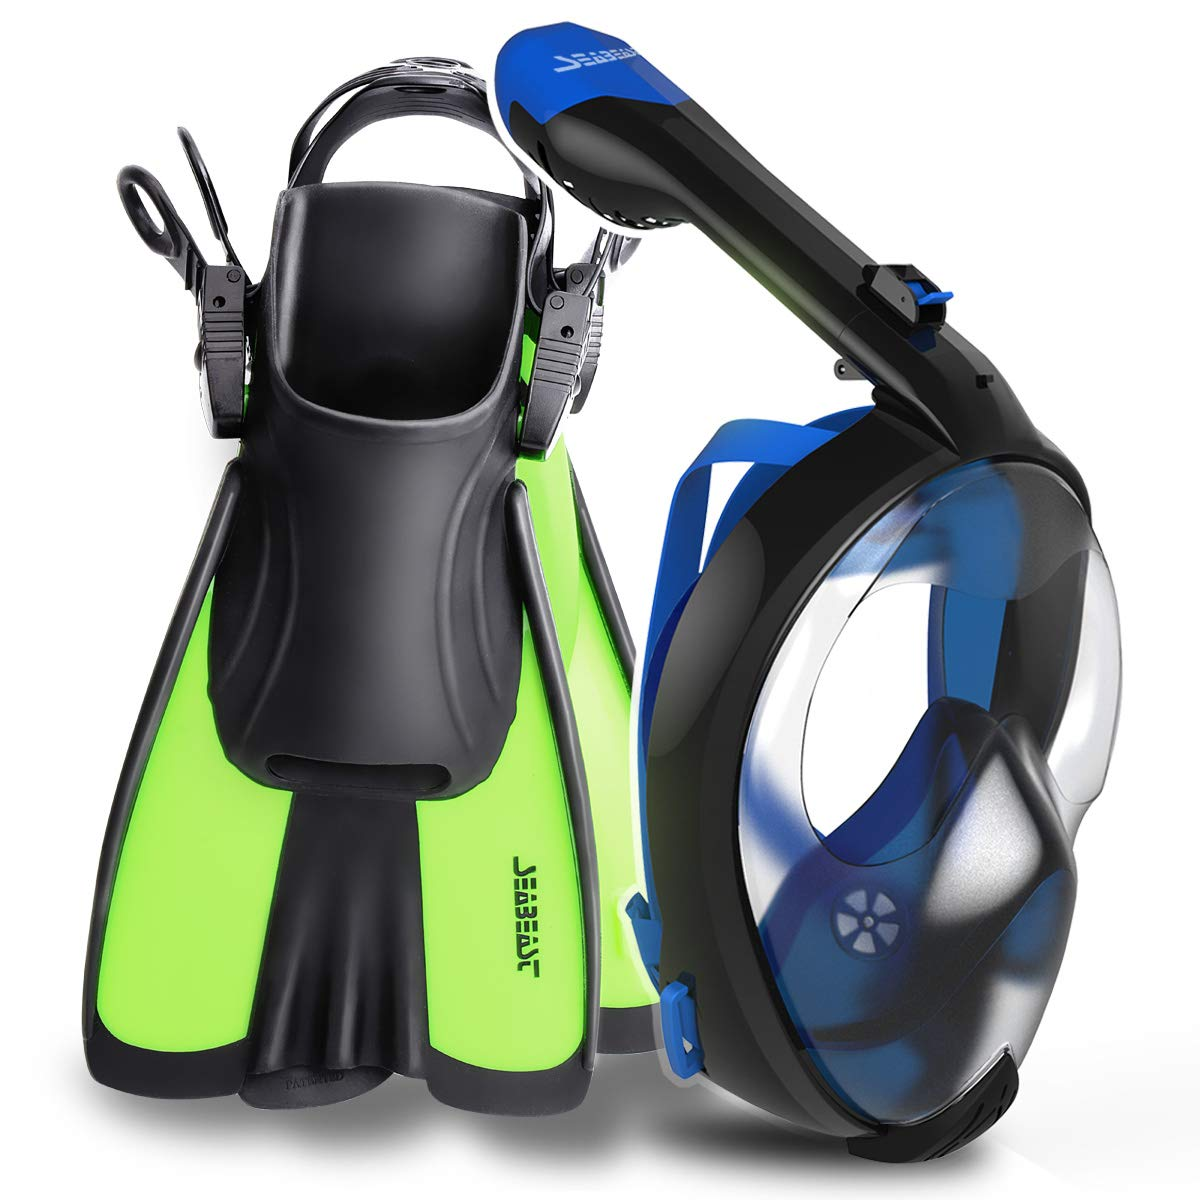 SEABEAST Snorkel Set with AF90 Full Face Snorkeling Mask and SF01 Open Foot Snorkel Fins? by SEABEAST